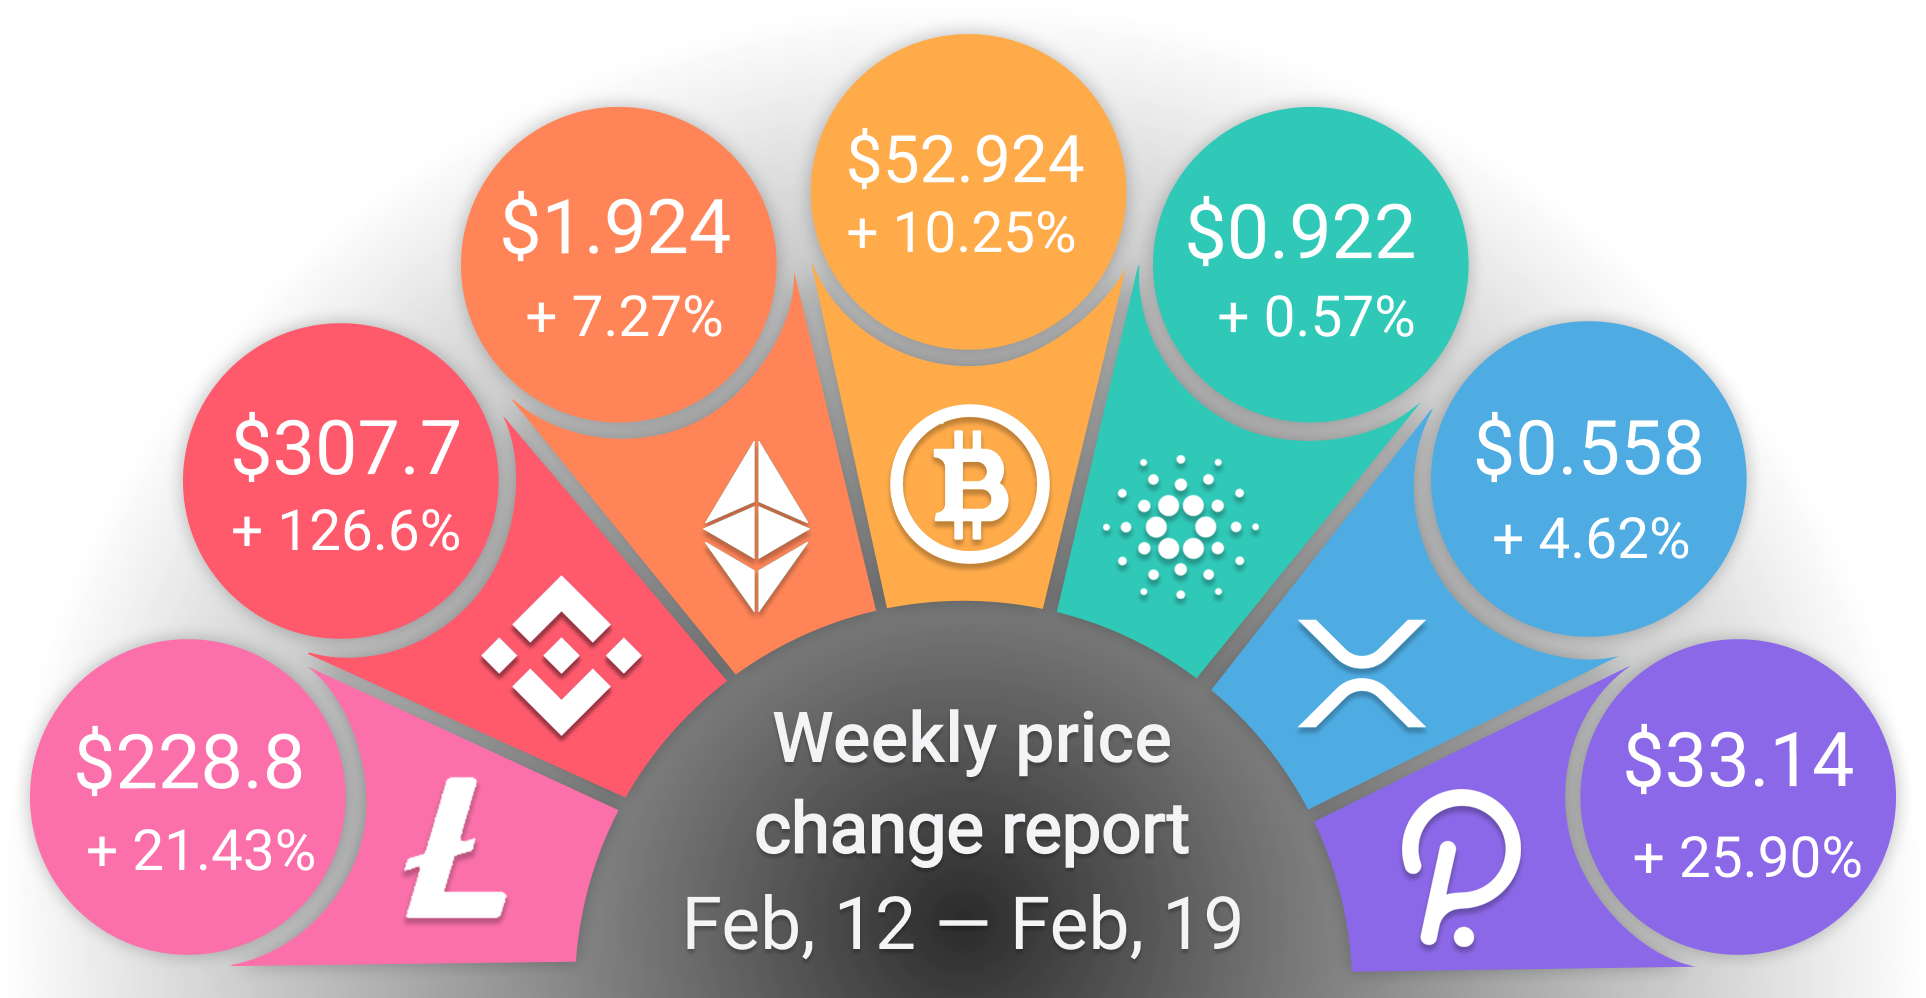 Weekly prices